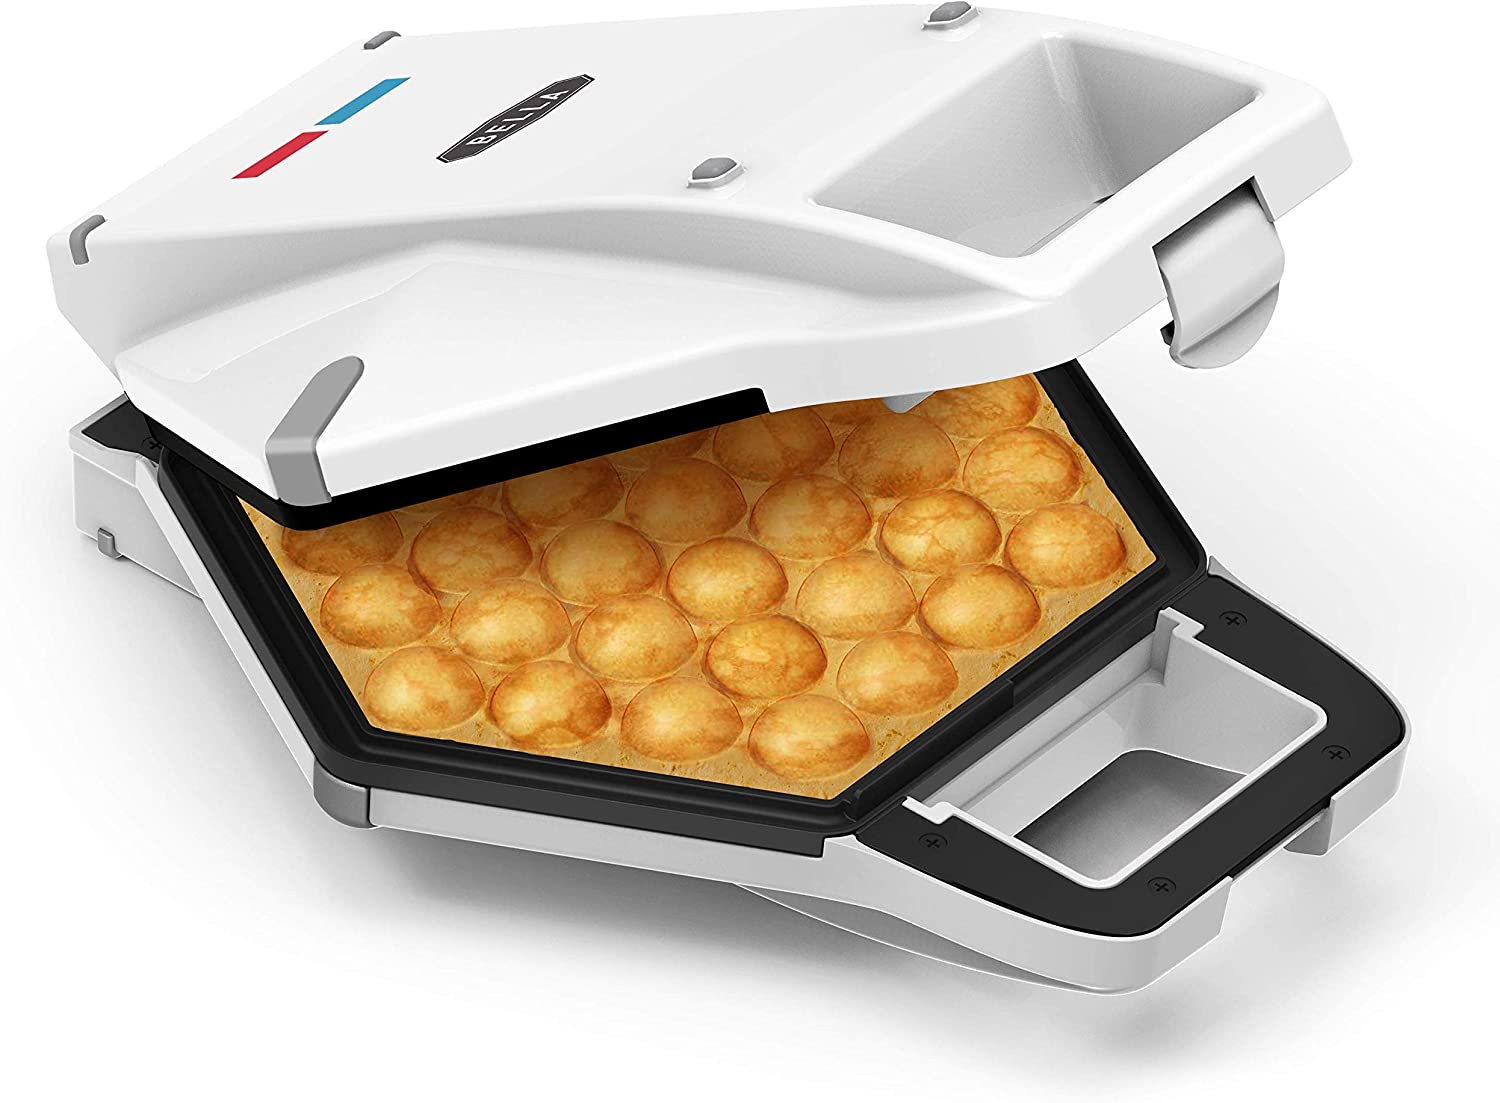 """BELLA 17175 Bubble Maker w Cone Rack, Rapid Quickly Make Fluffy 9"""" Authentic Hong Kong Breakfast or Dessert Waffles, Healthy-Eco Non Stick Coating, Easy to Clean Iron, Included, White"""